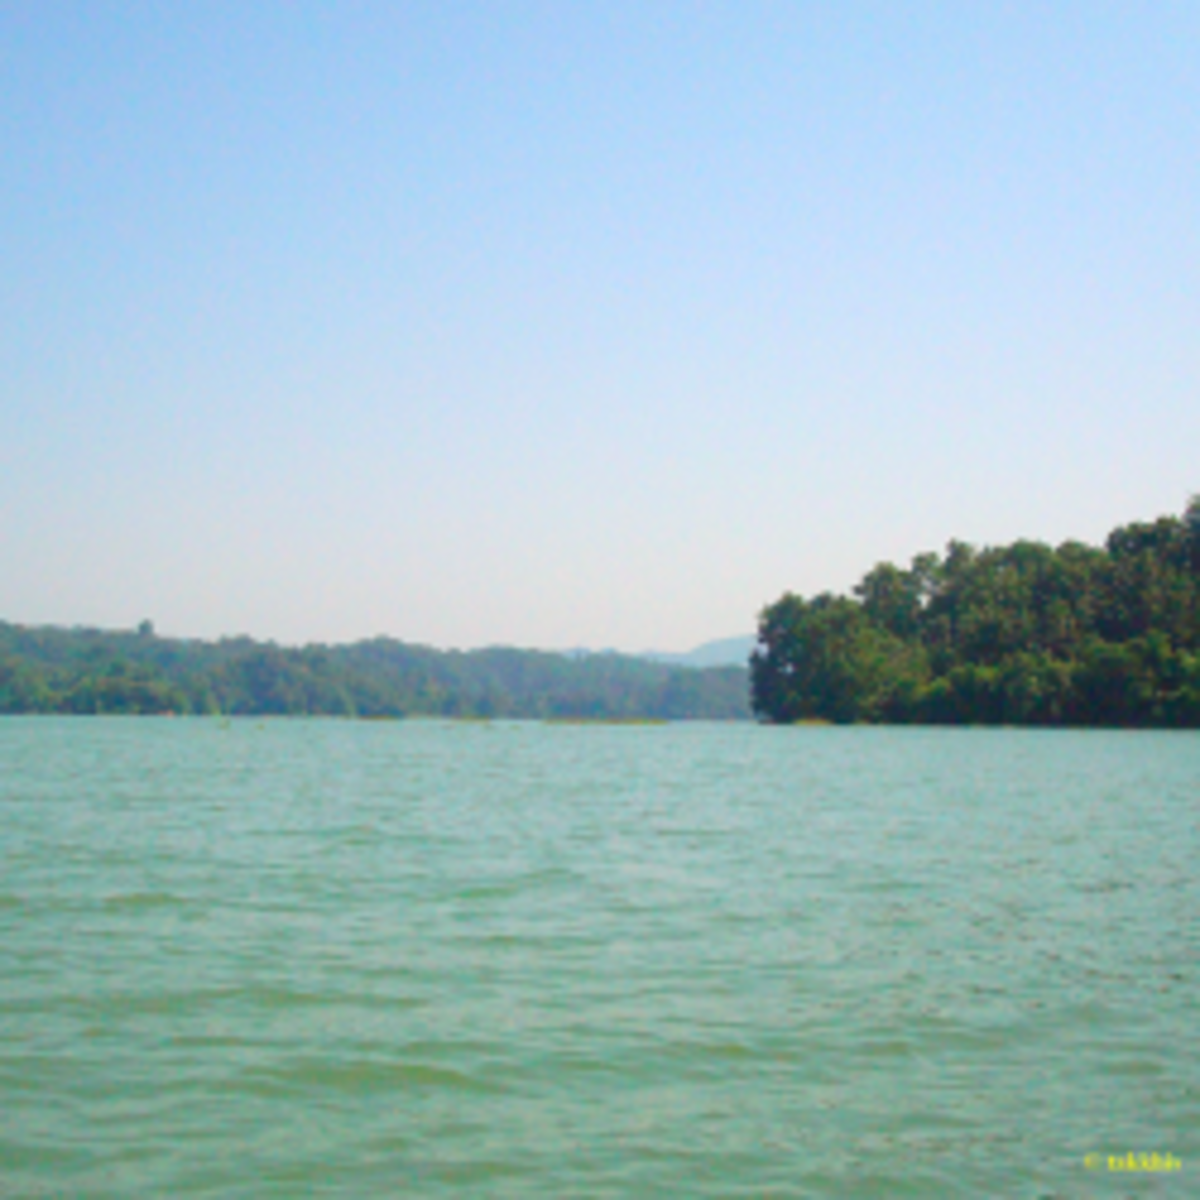 Kaptai Lake: The Lake of Tears